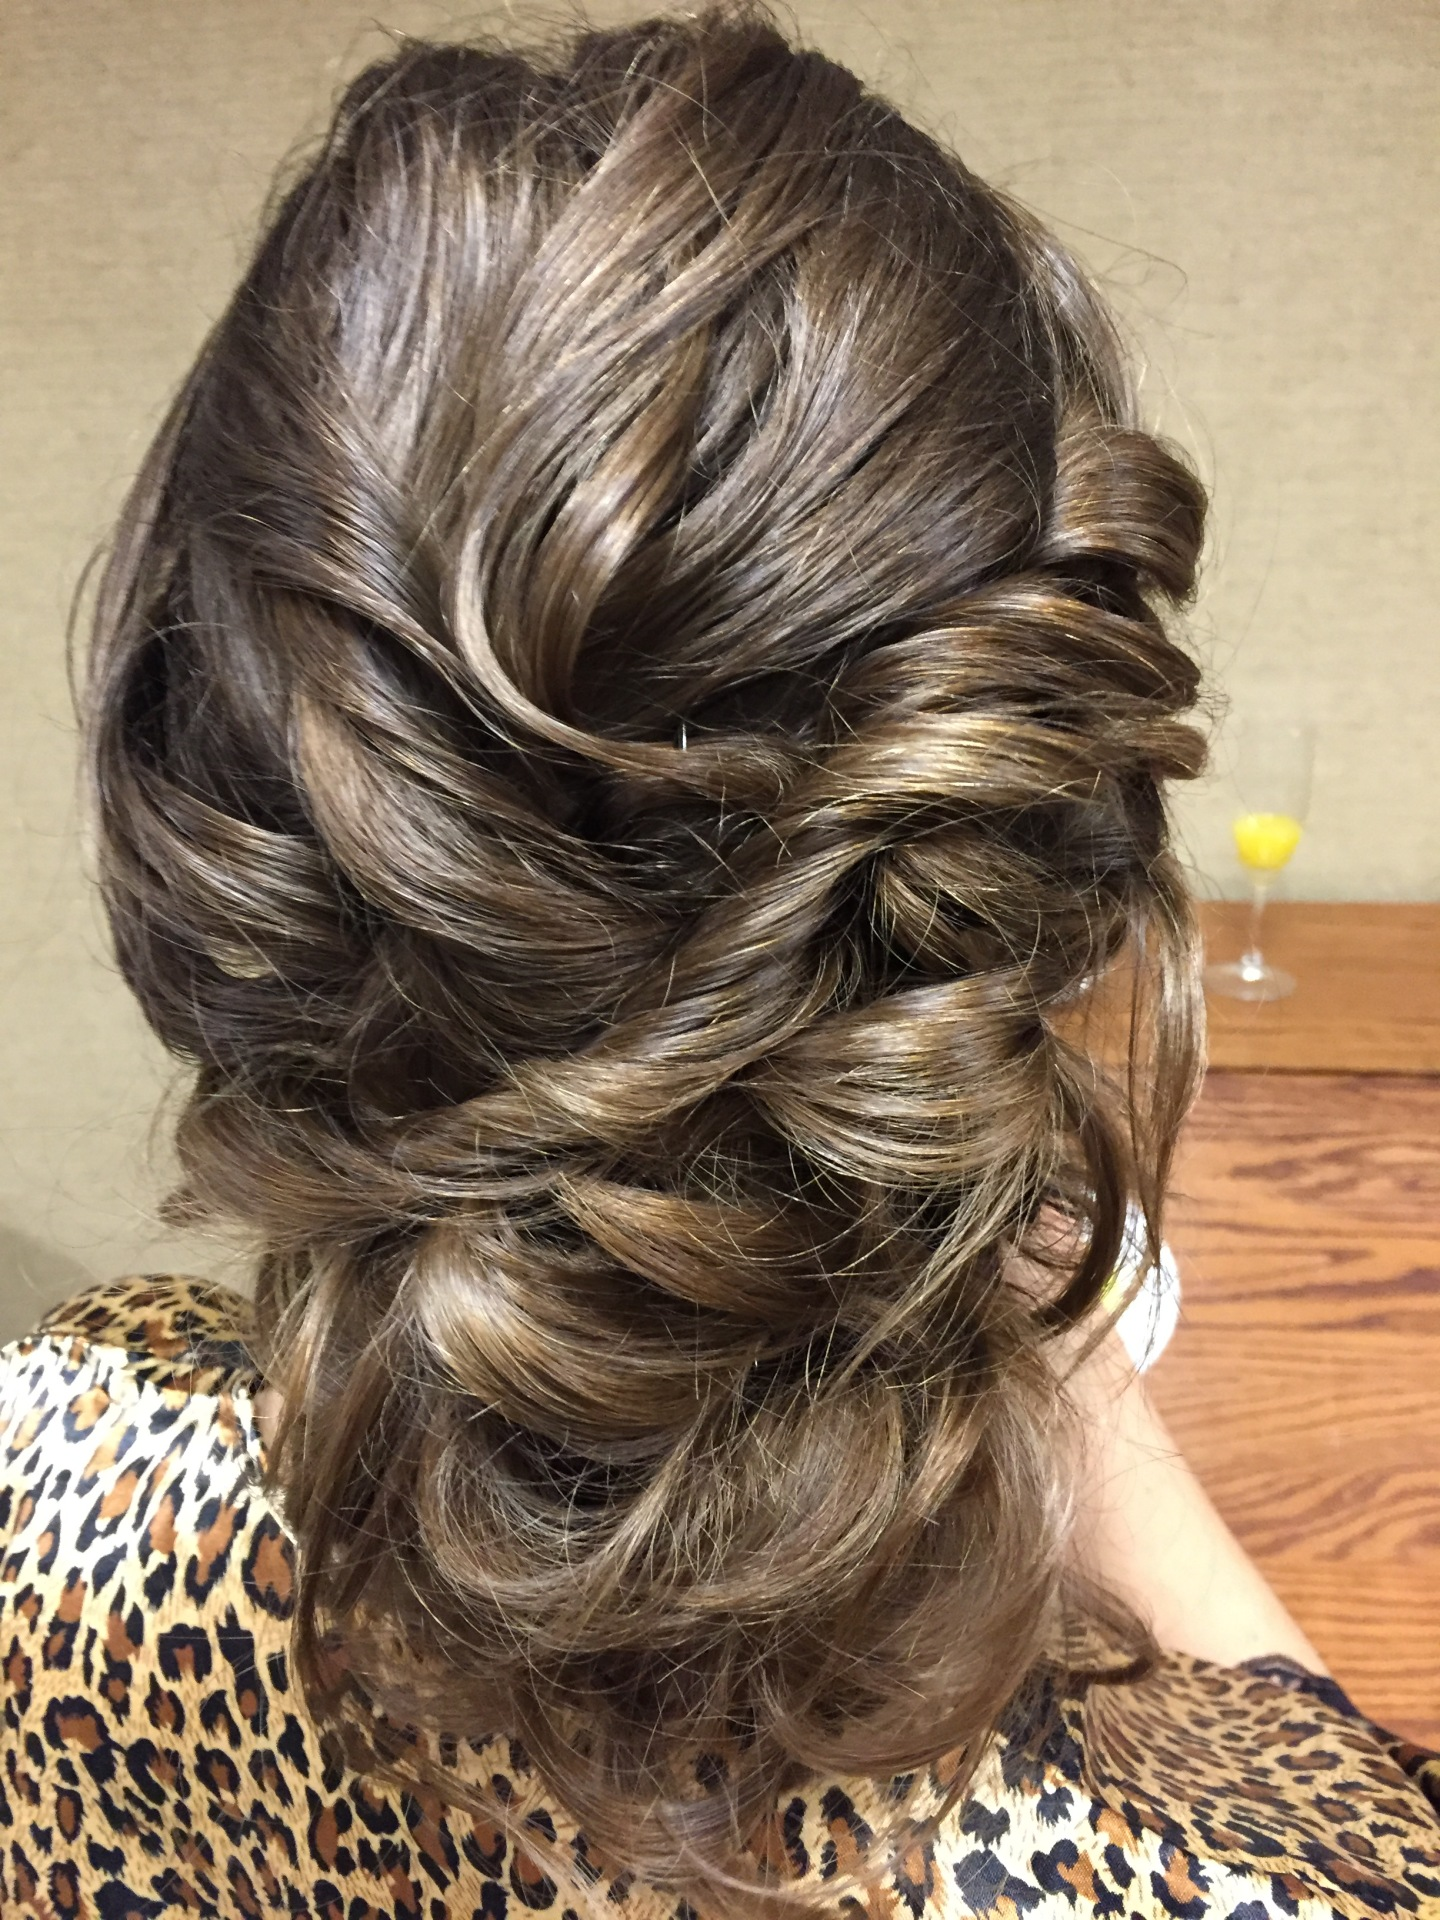 Top ten updo salons in Asheville, NC